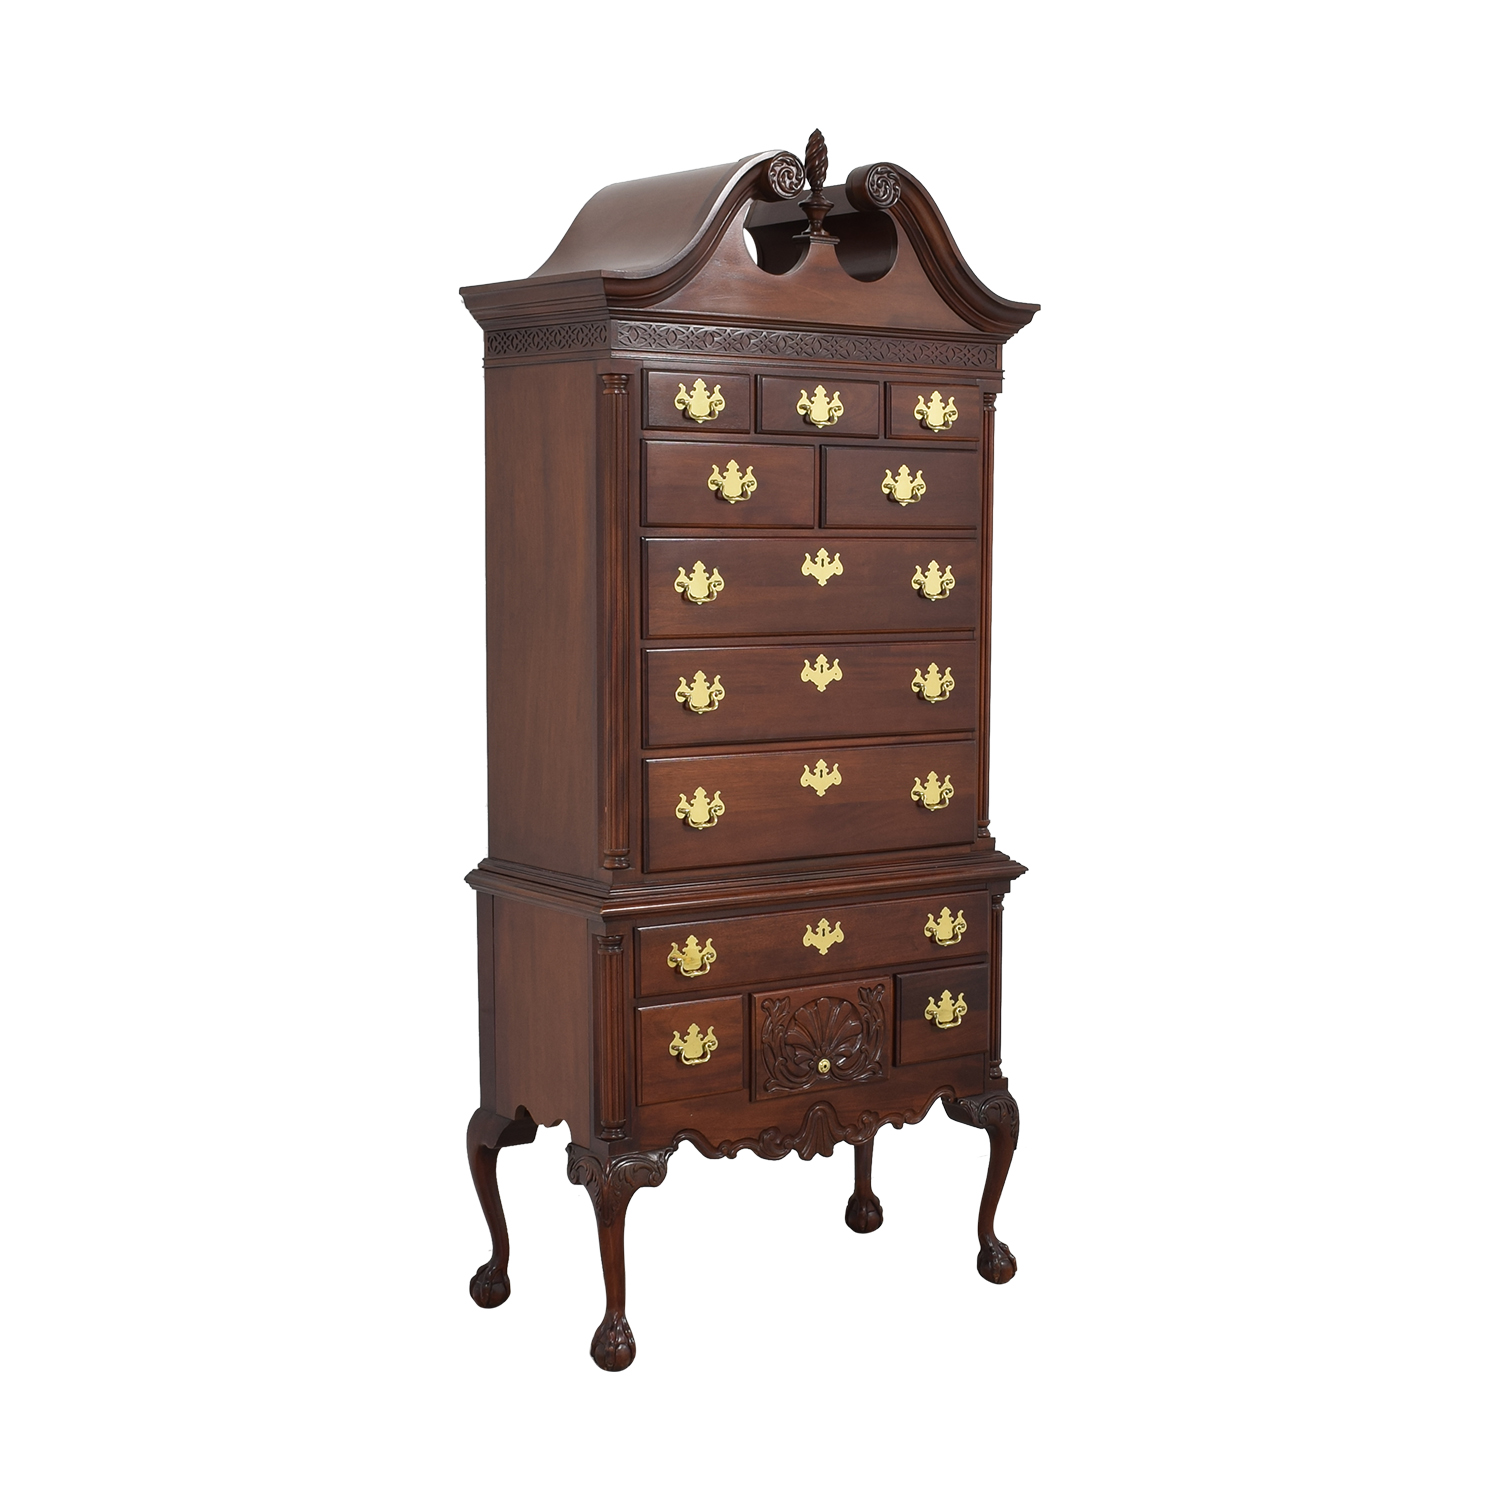 Thomasville Thomasville Highboy Dresser pa